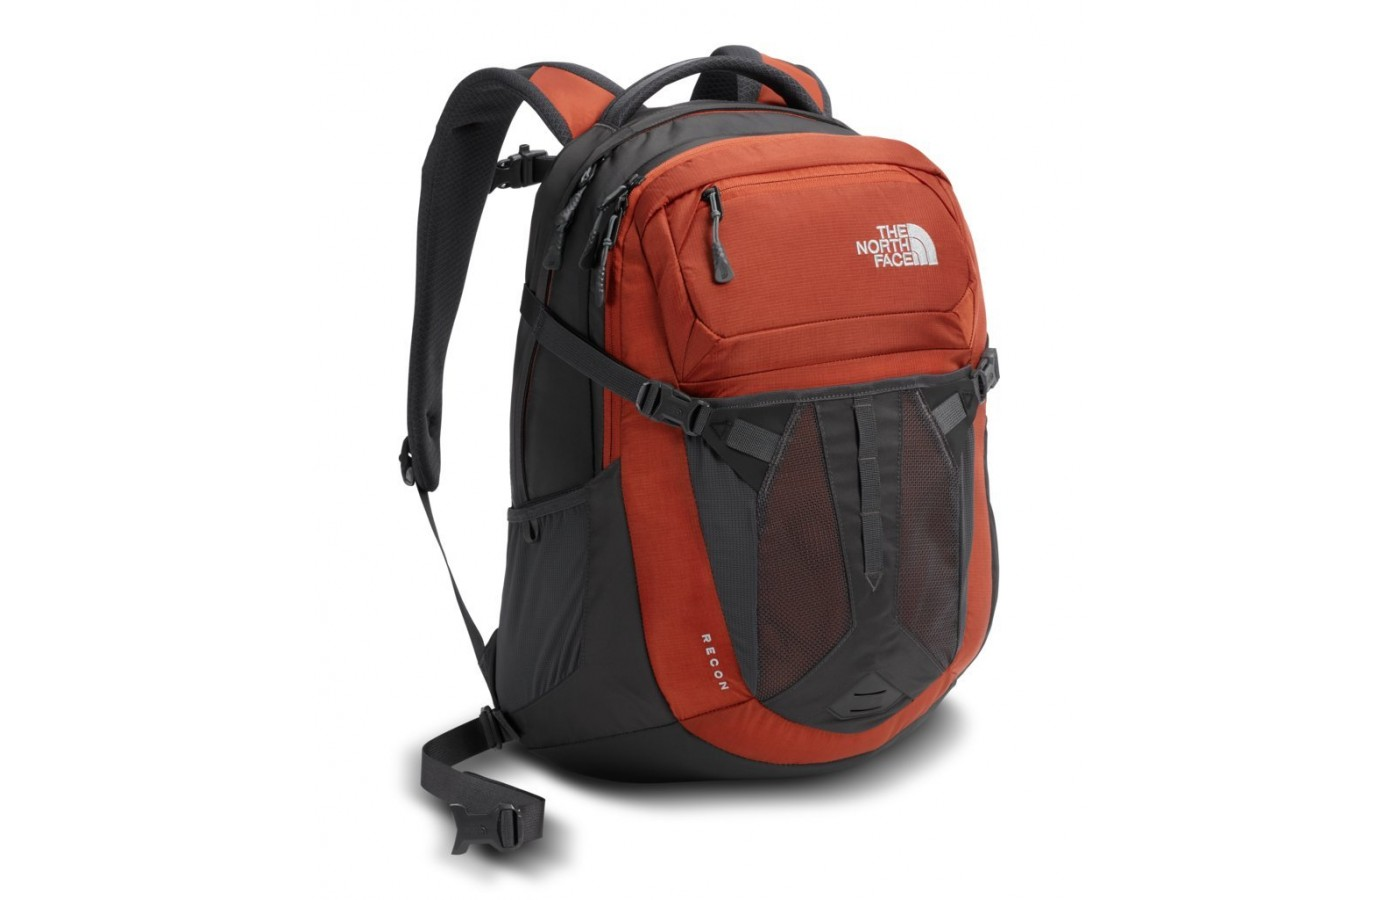 The North Face Recon Backpack is an excellent selection for those looking for an all-around backpack to take on short hikes, on trips and to work.